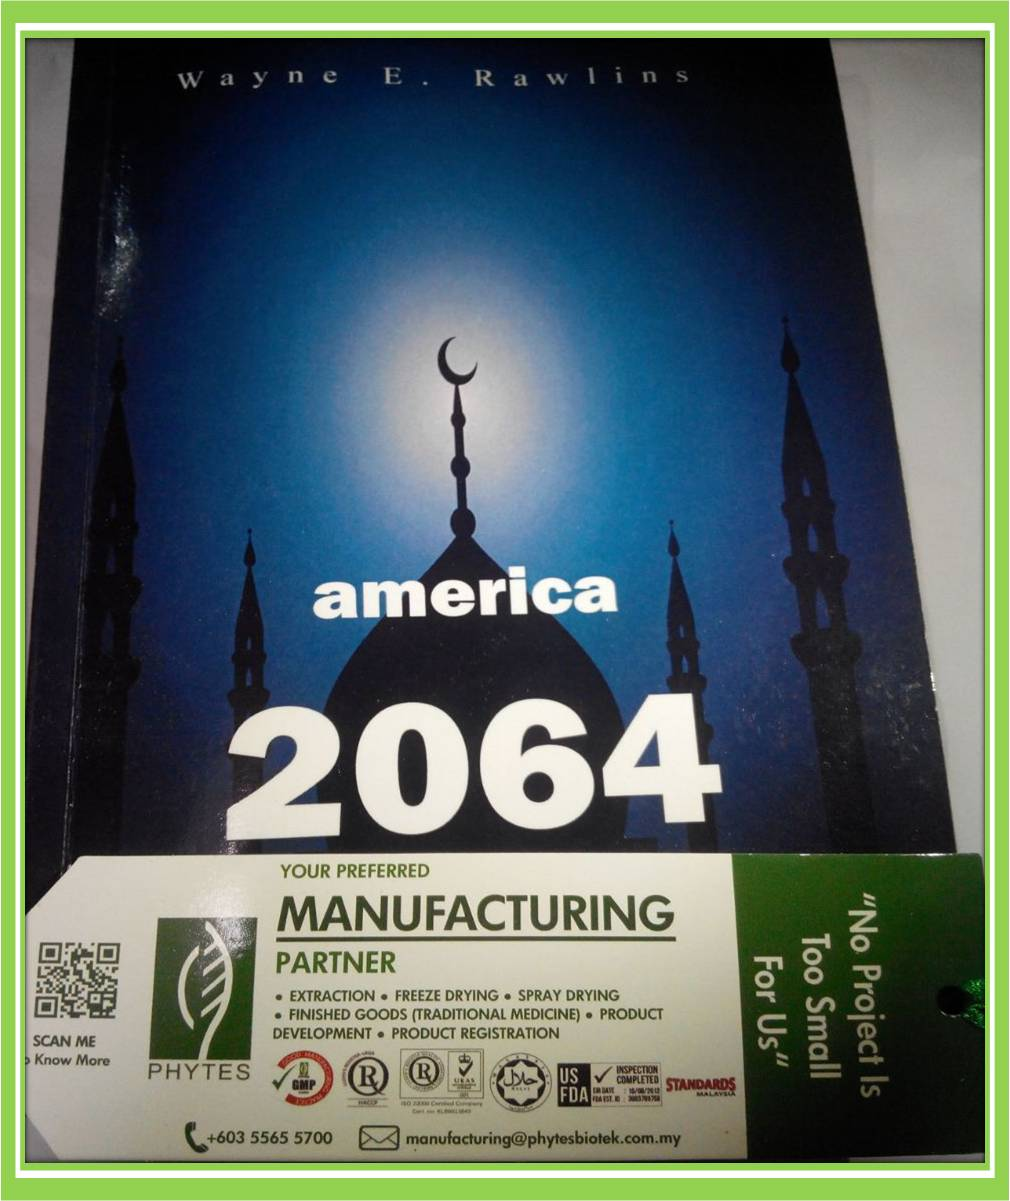 'America 2064' by Wayne E.Rawlins (Must Read ) Nu-Prep Tongkat Ali Perfect Supplement.